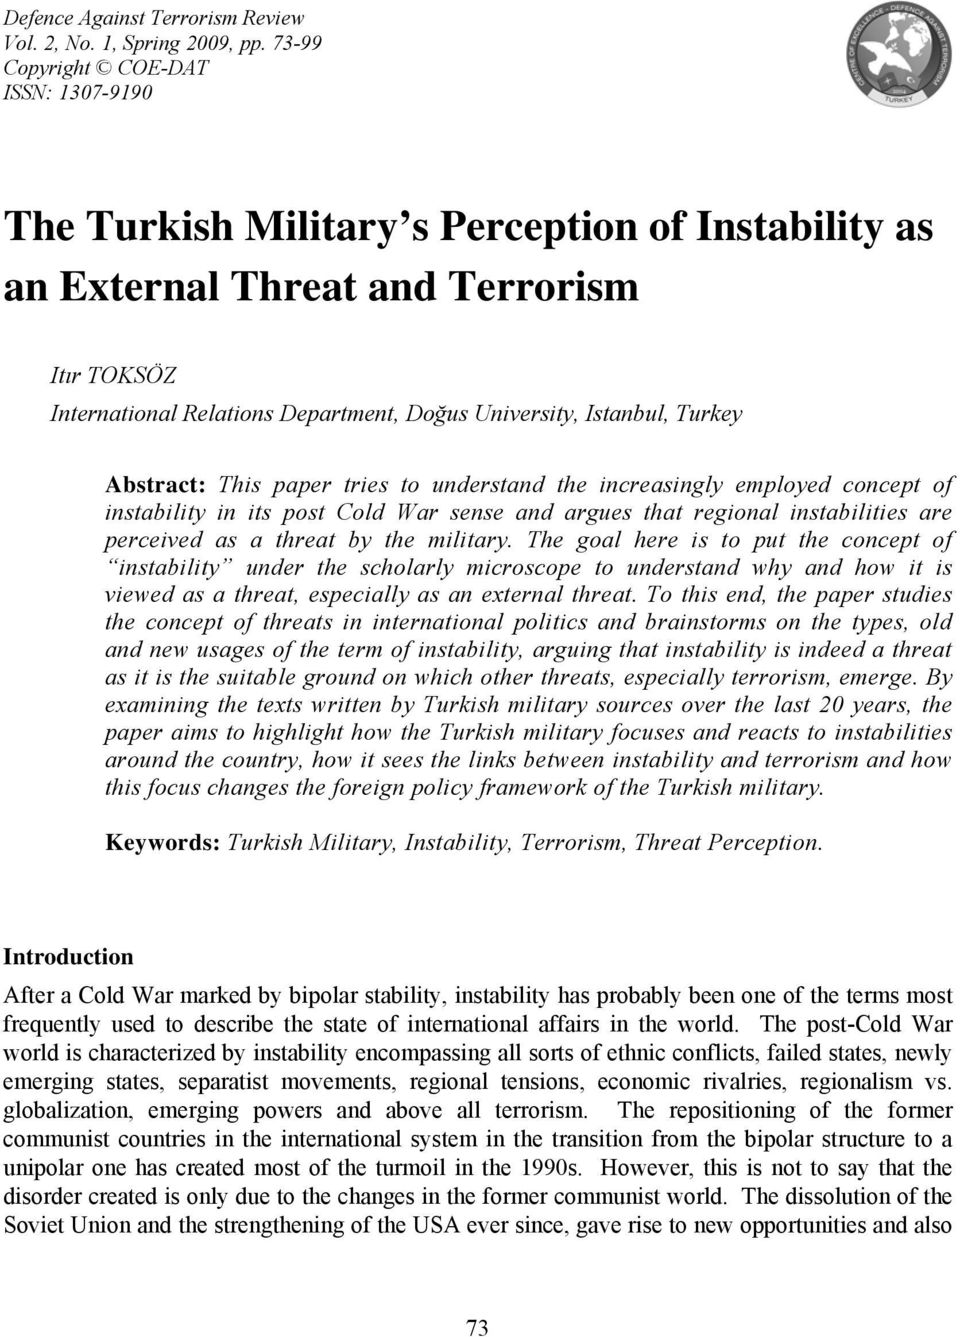 Istanbul, Turkey Abstract: This paper tries to understand the increasingly employed concept of instability in its post Cold War sense and argues that regional instabilities are perceived as a threat